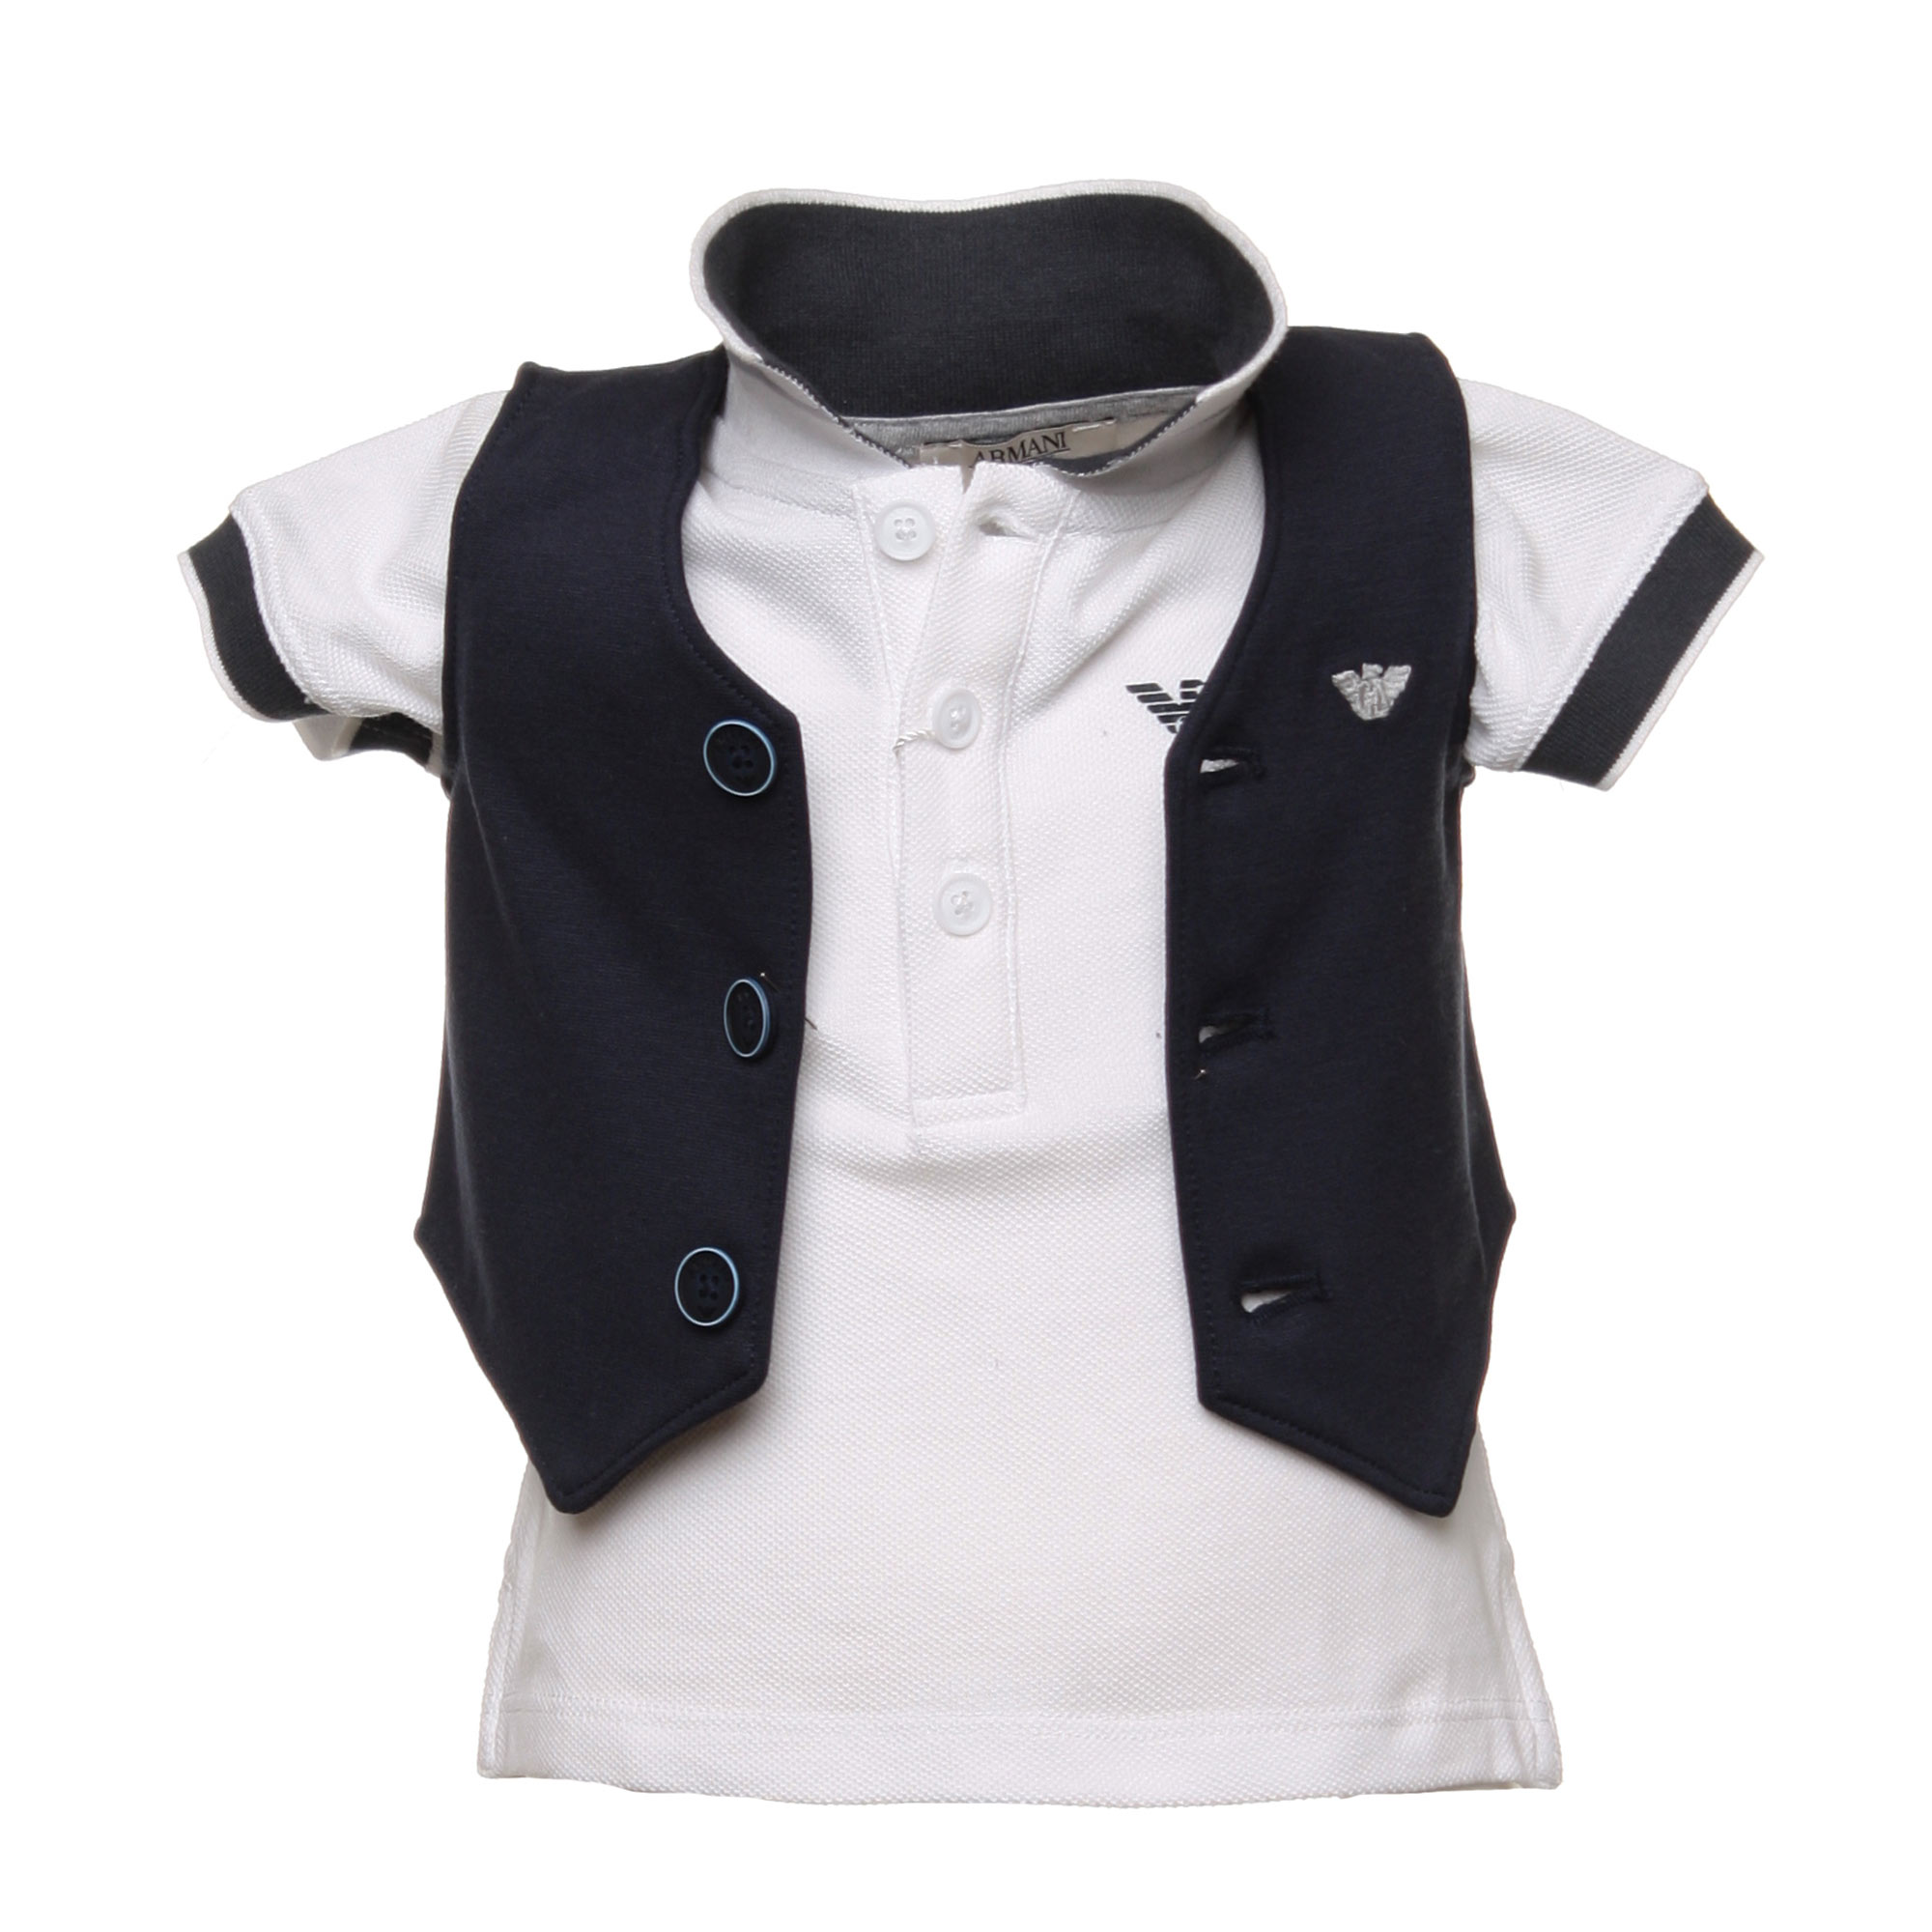 a2404e748603 Armani Junior - Gilet For Baby Boys - annameglio.com shop online